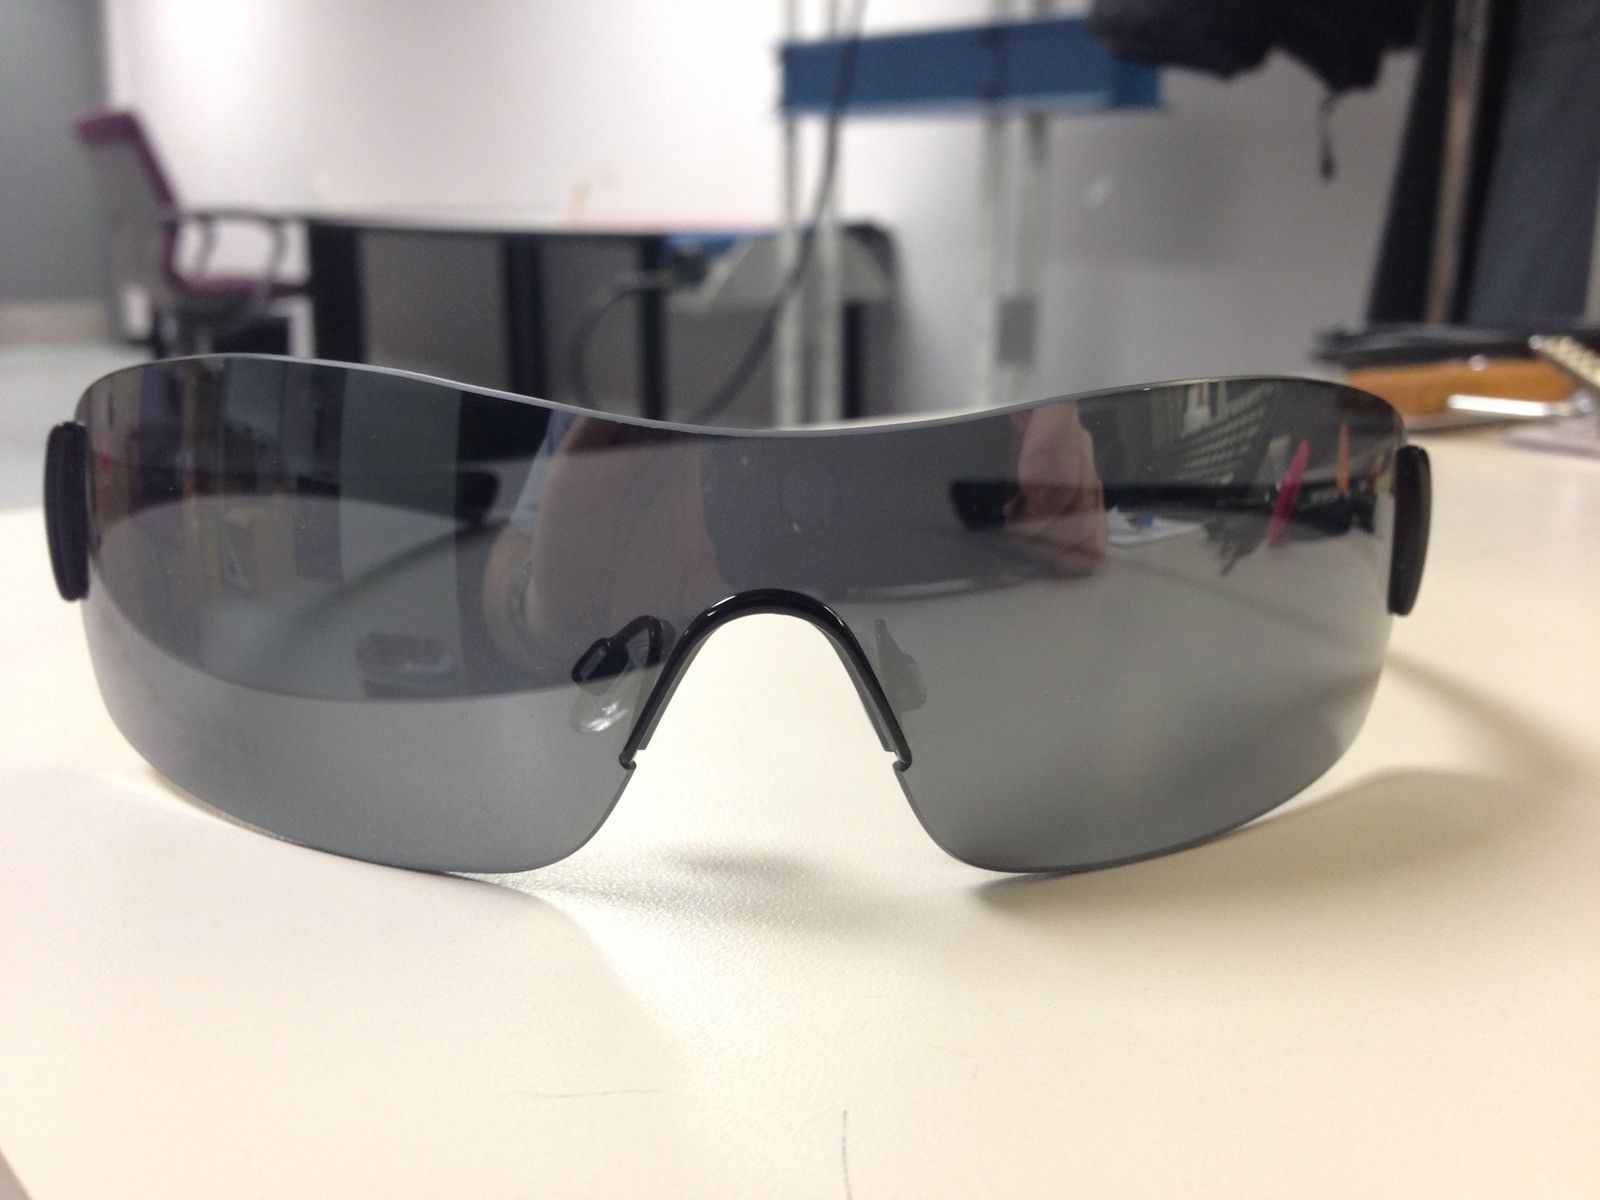 WTS: Coducts And GASCAN S Open To All Offers - oakleys001.jpg